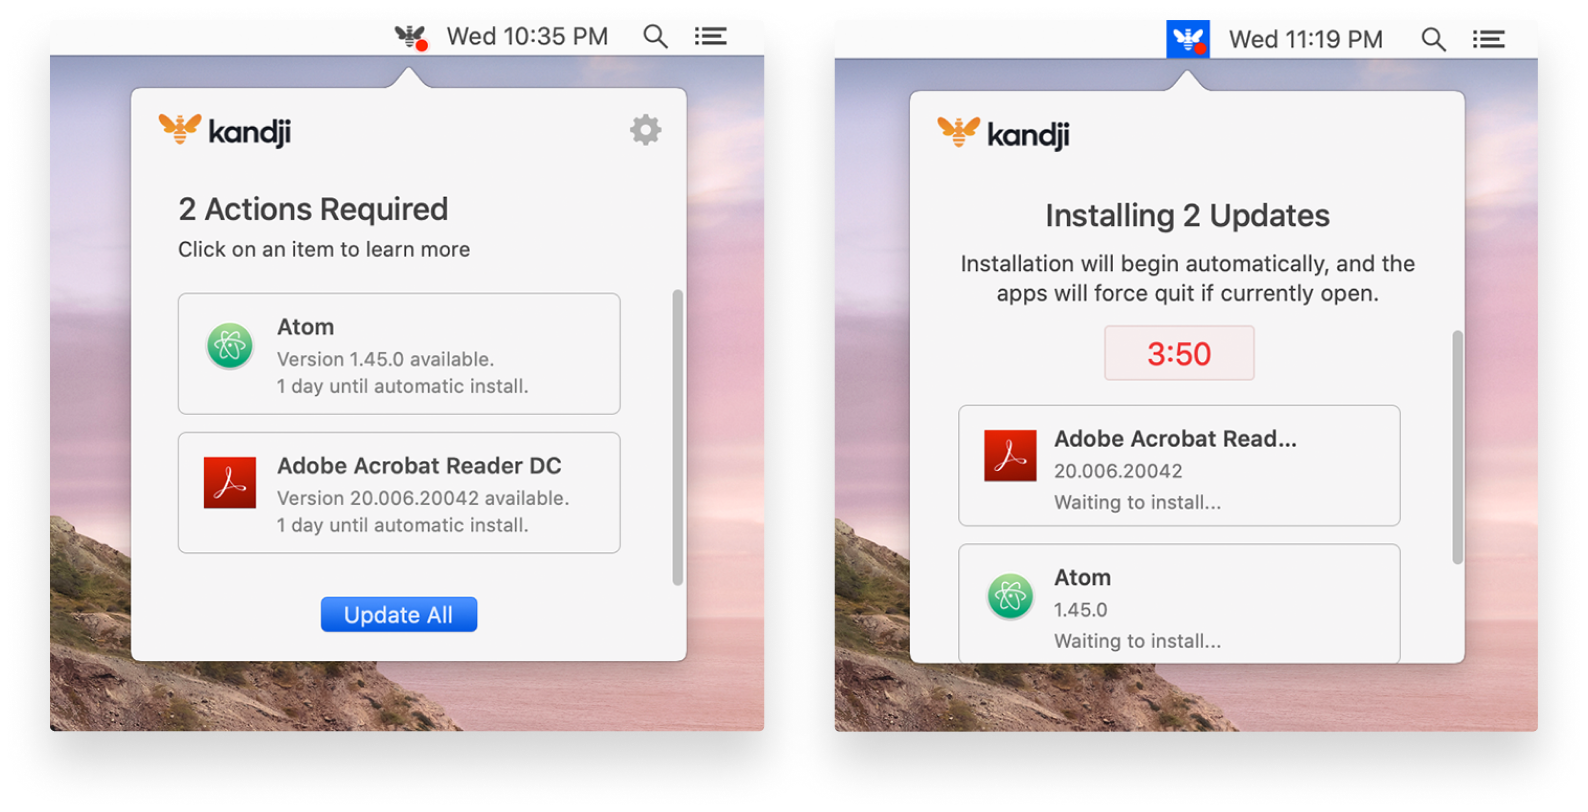 kandji mac patch management auto apps user experience-1